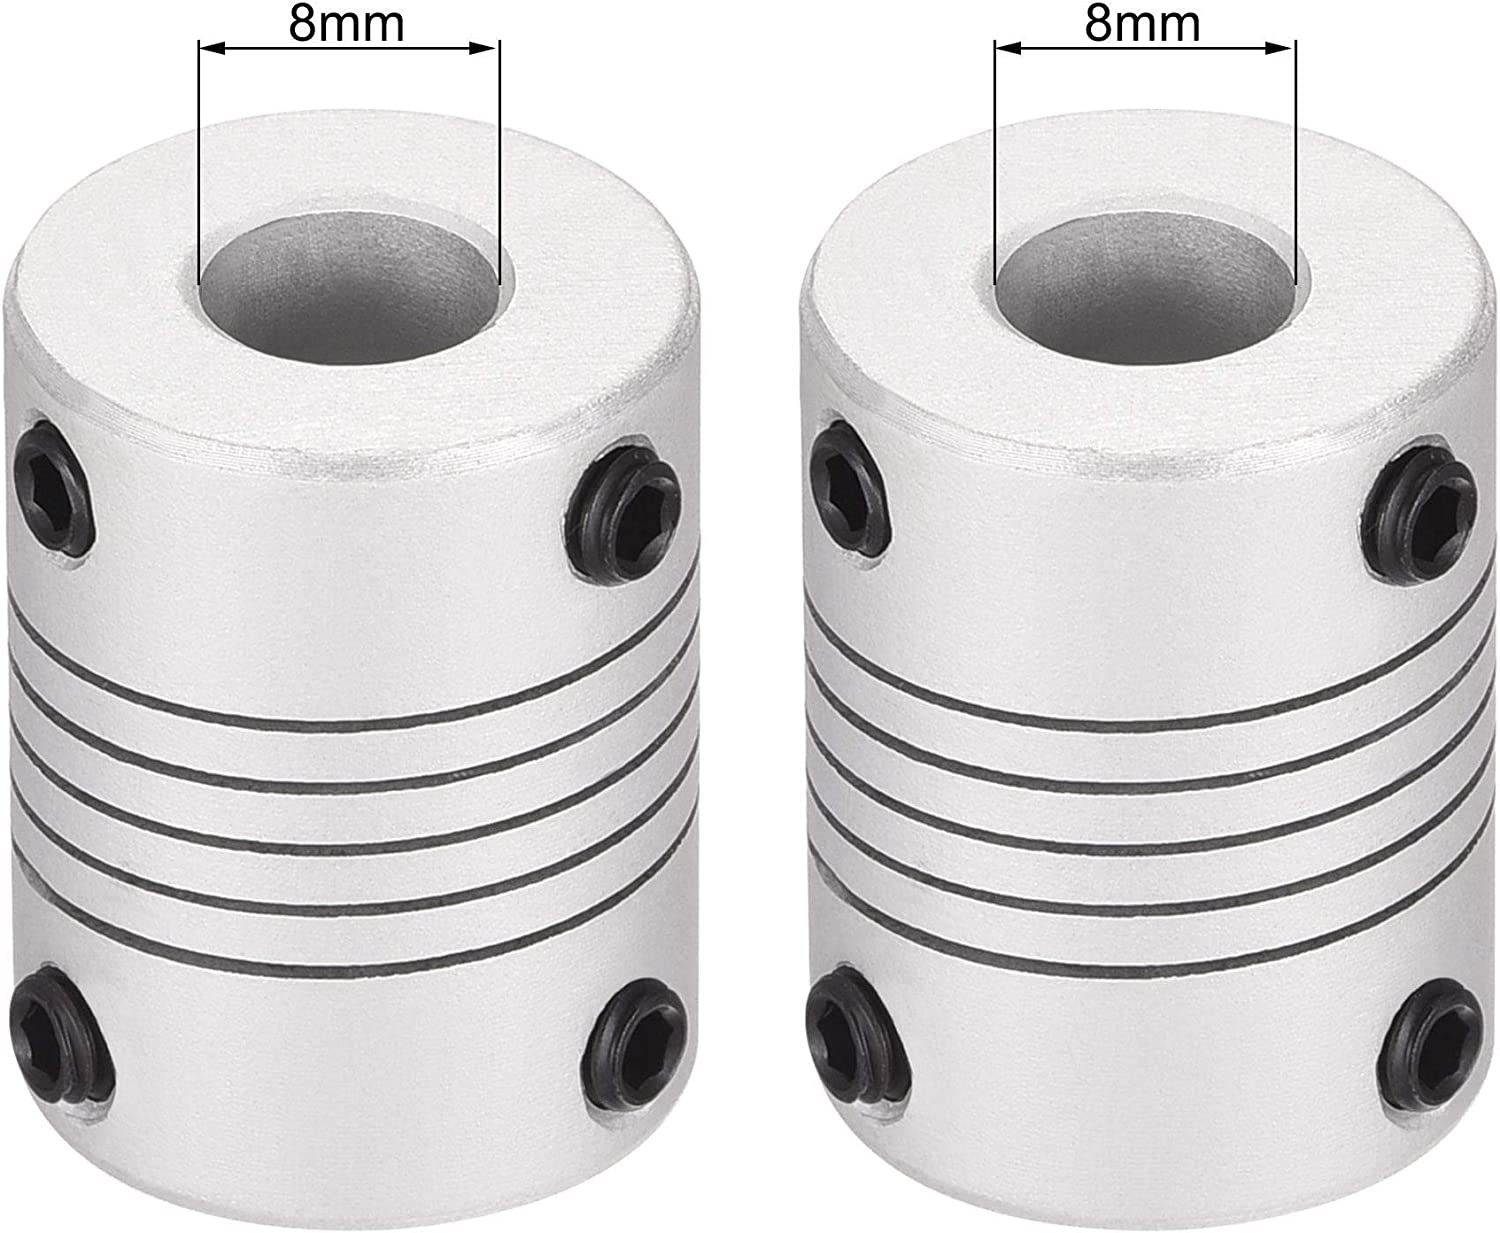 uxcell 8mm to 8mm Aluminum Alloy Shaft Coupling Flexible Coupler Motor Connector Joint L25xD19 Silver,2pcs